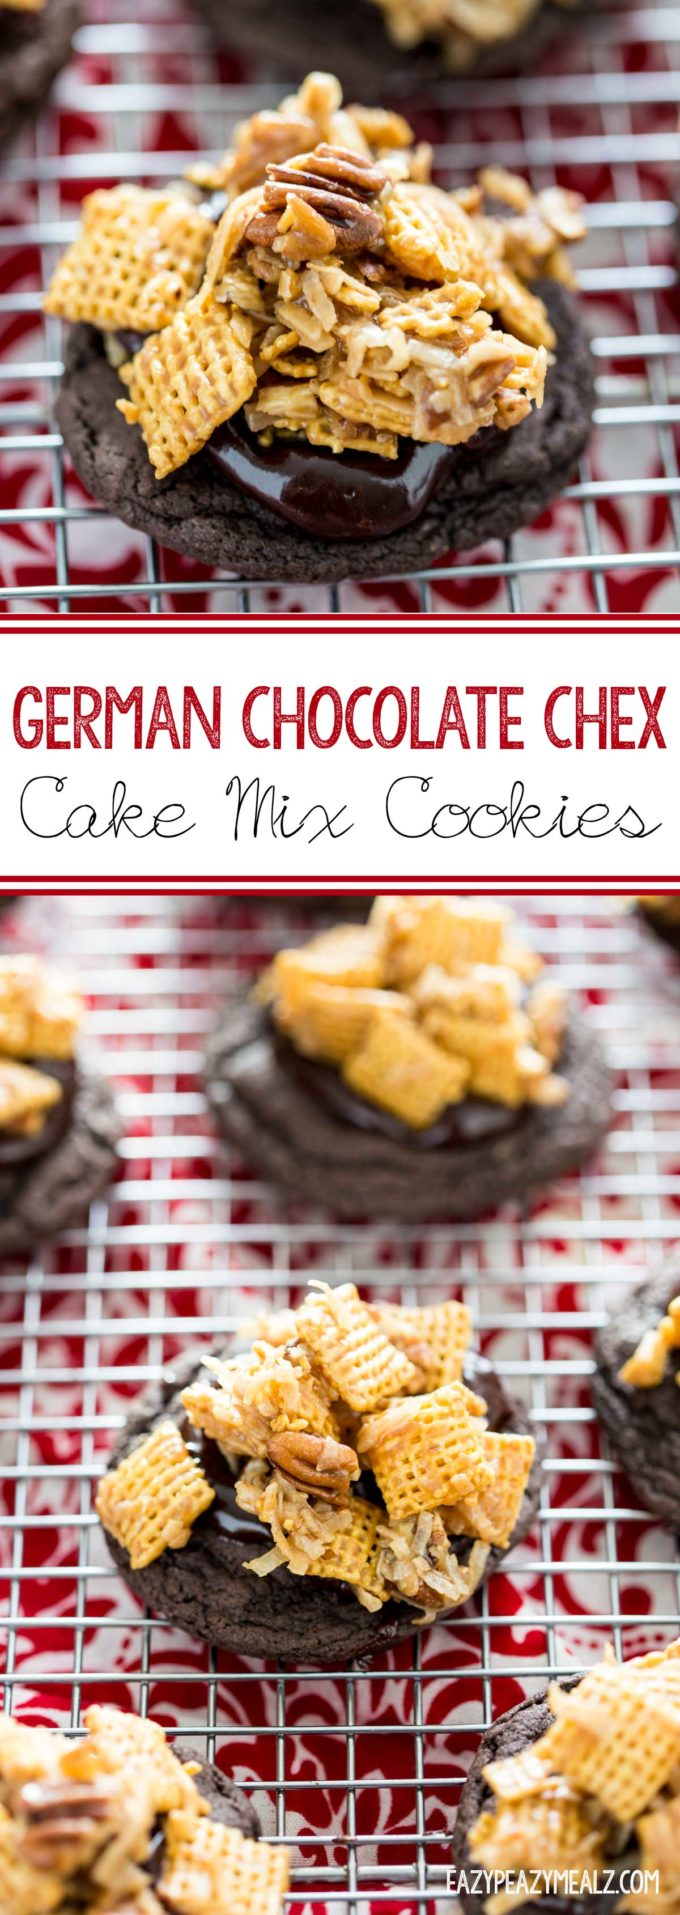 German Chocolate Chex Cake Mix Cookies - Eazy Peazy Mealz